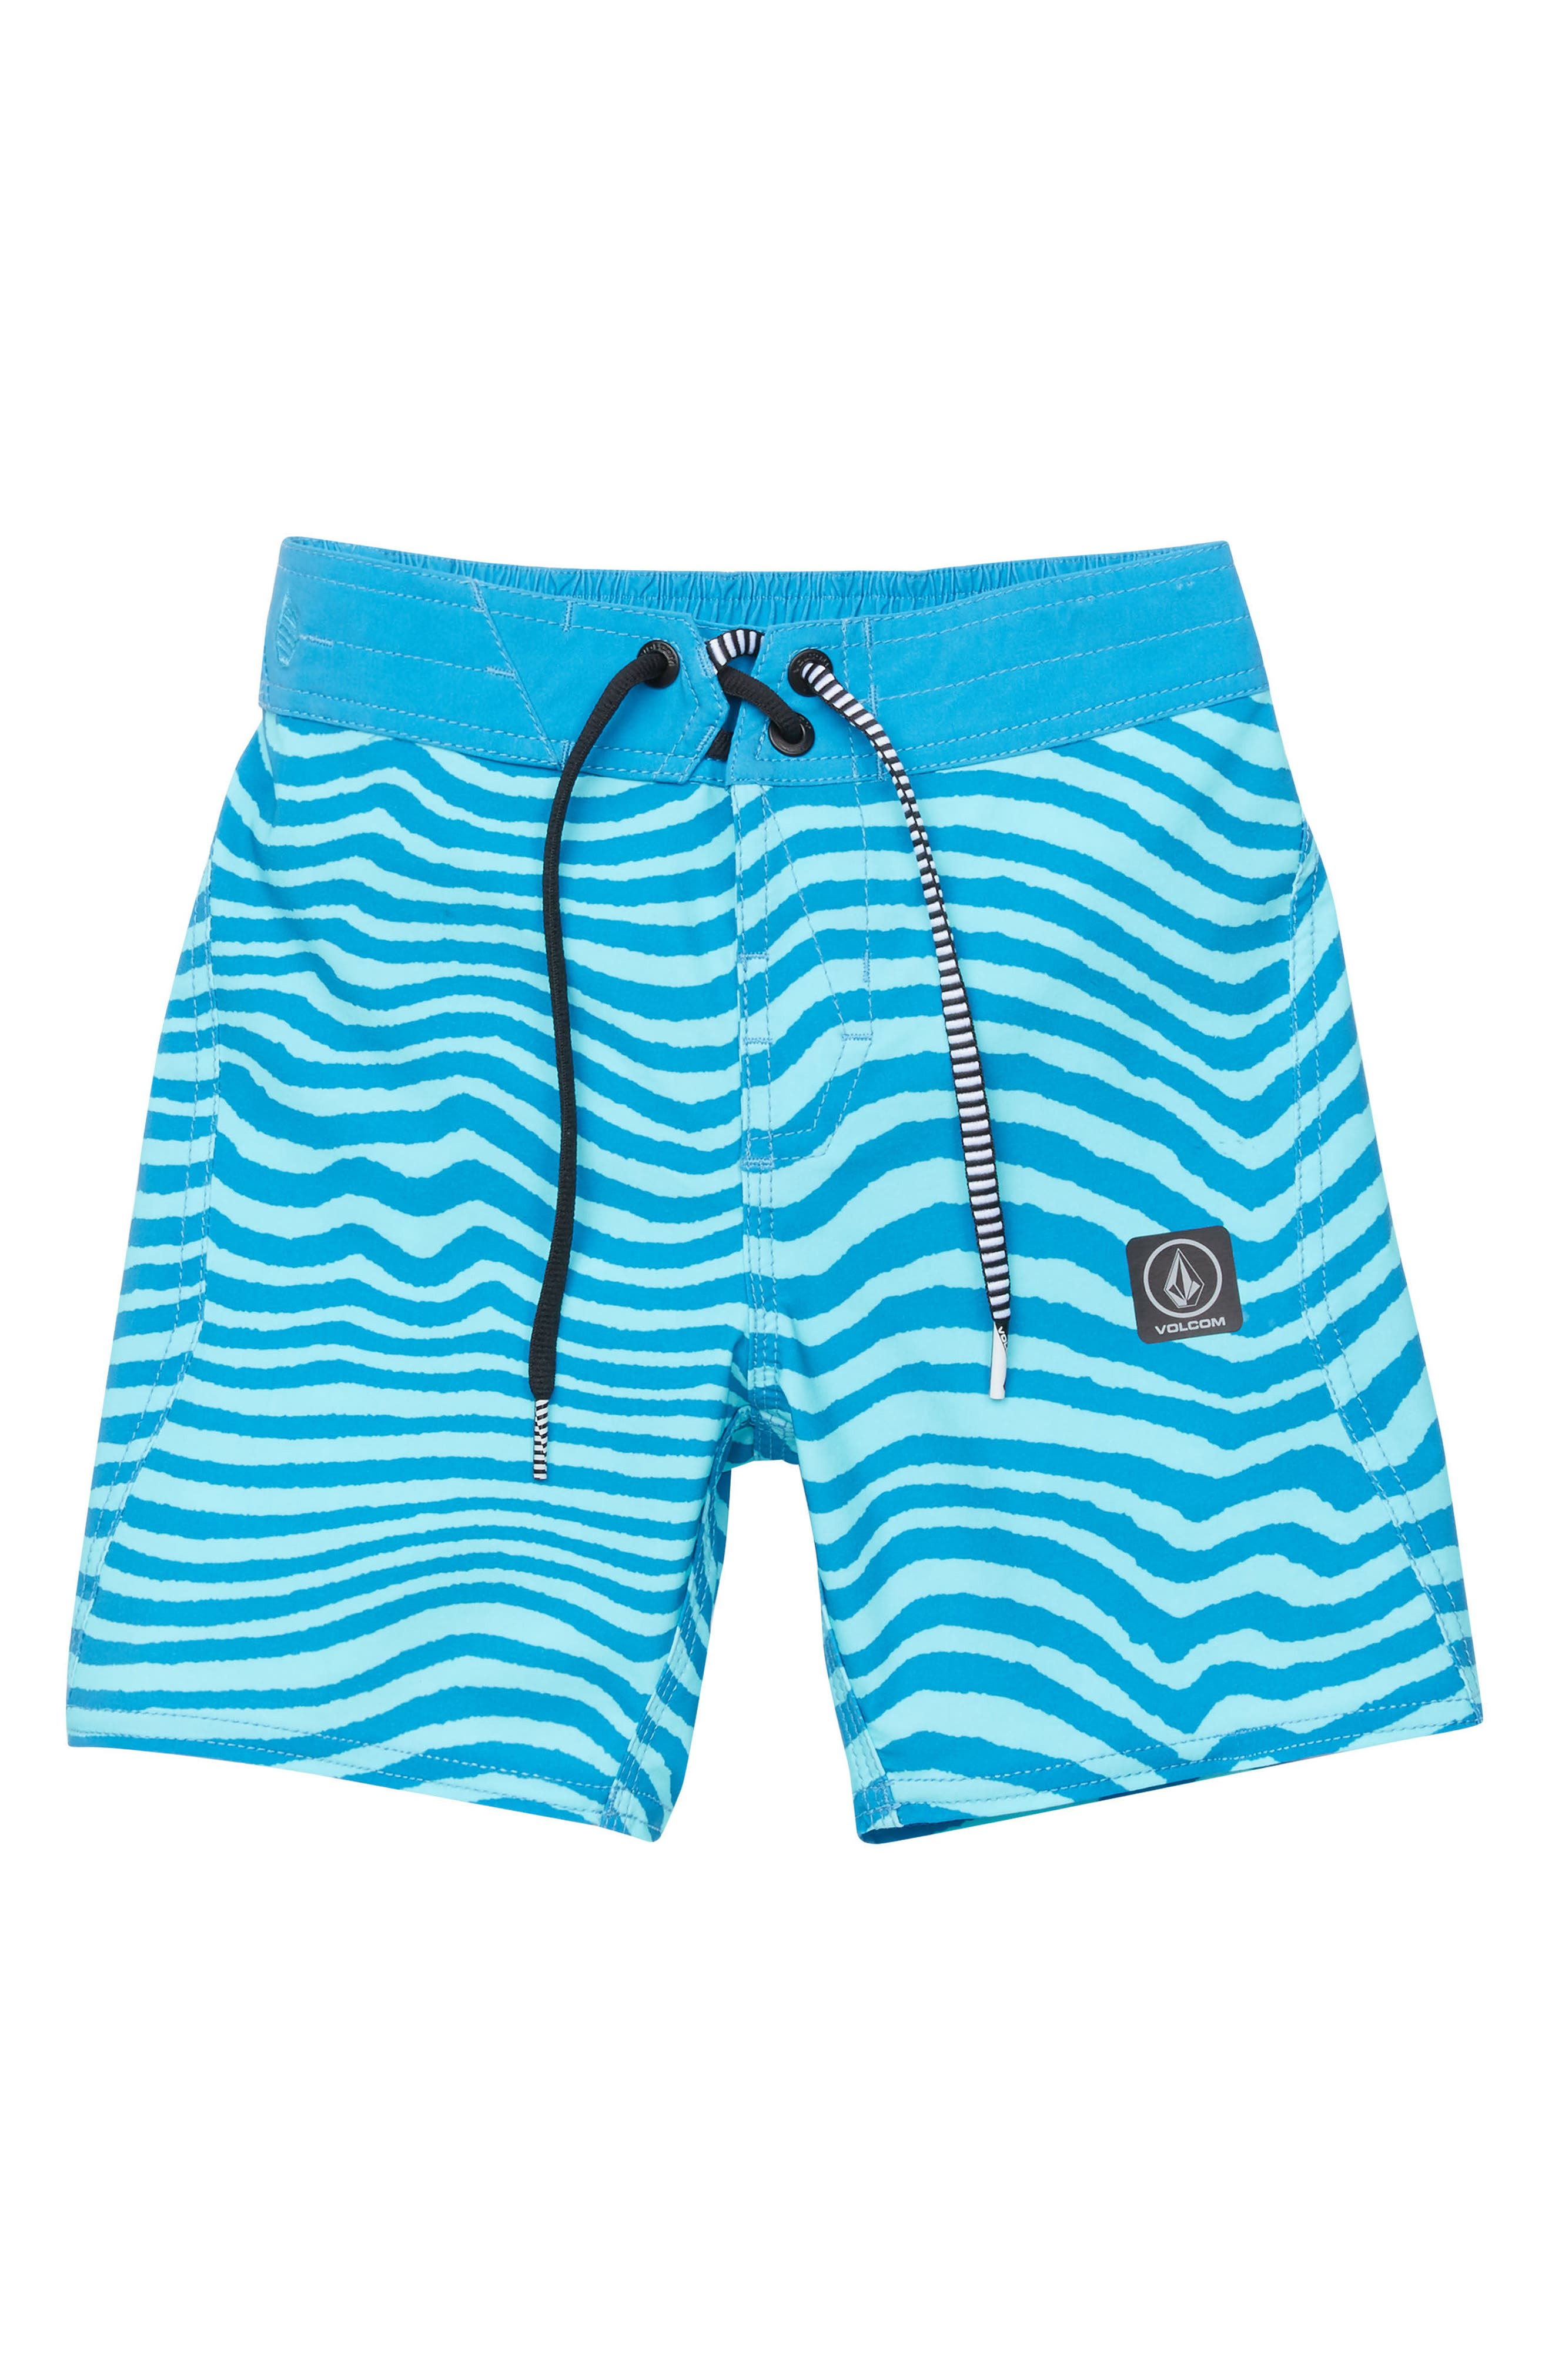 Mag Vibes Board Shorts,                         Main,                         color, Bright Turquoise